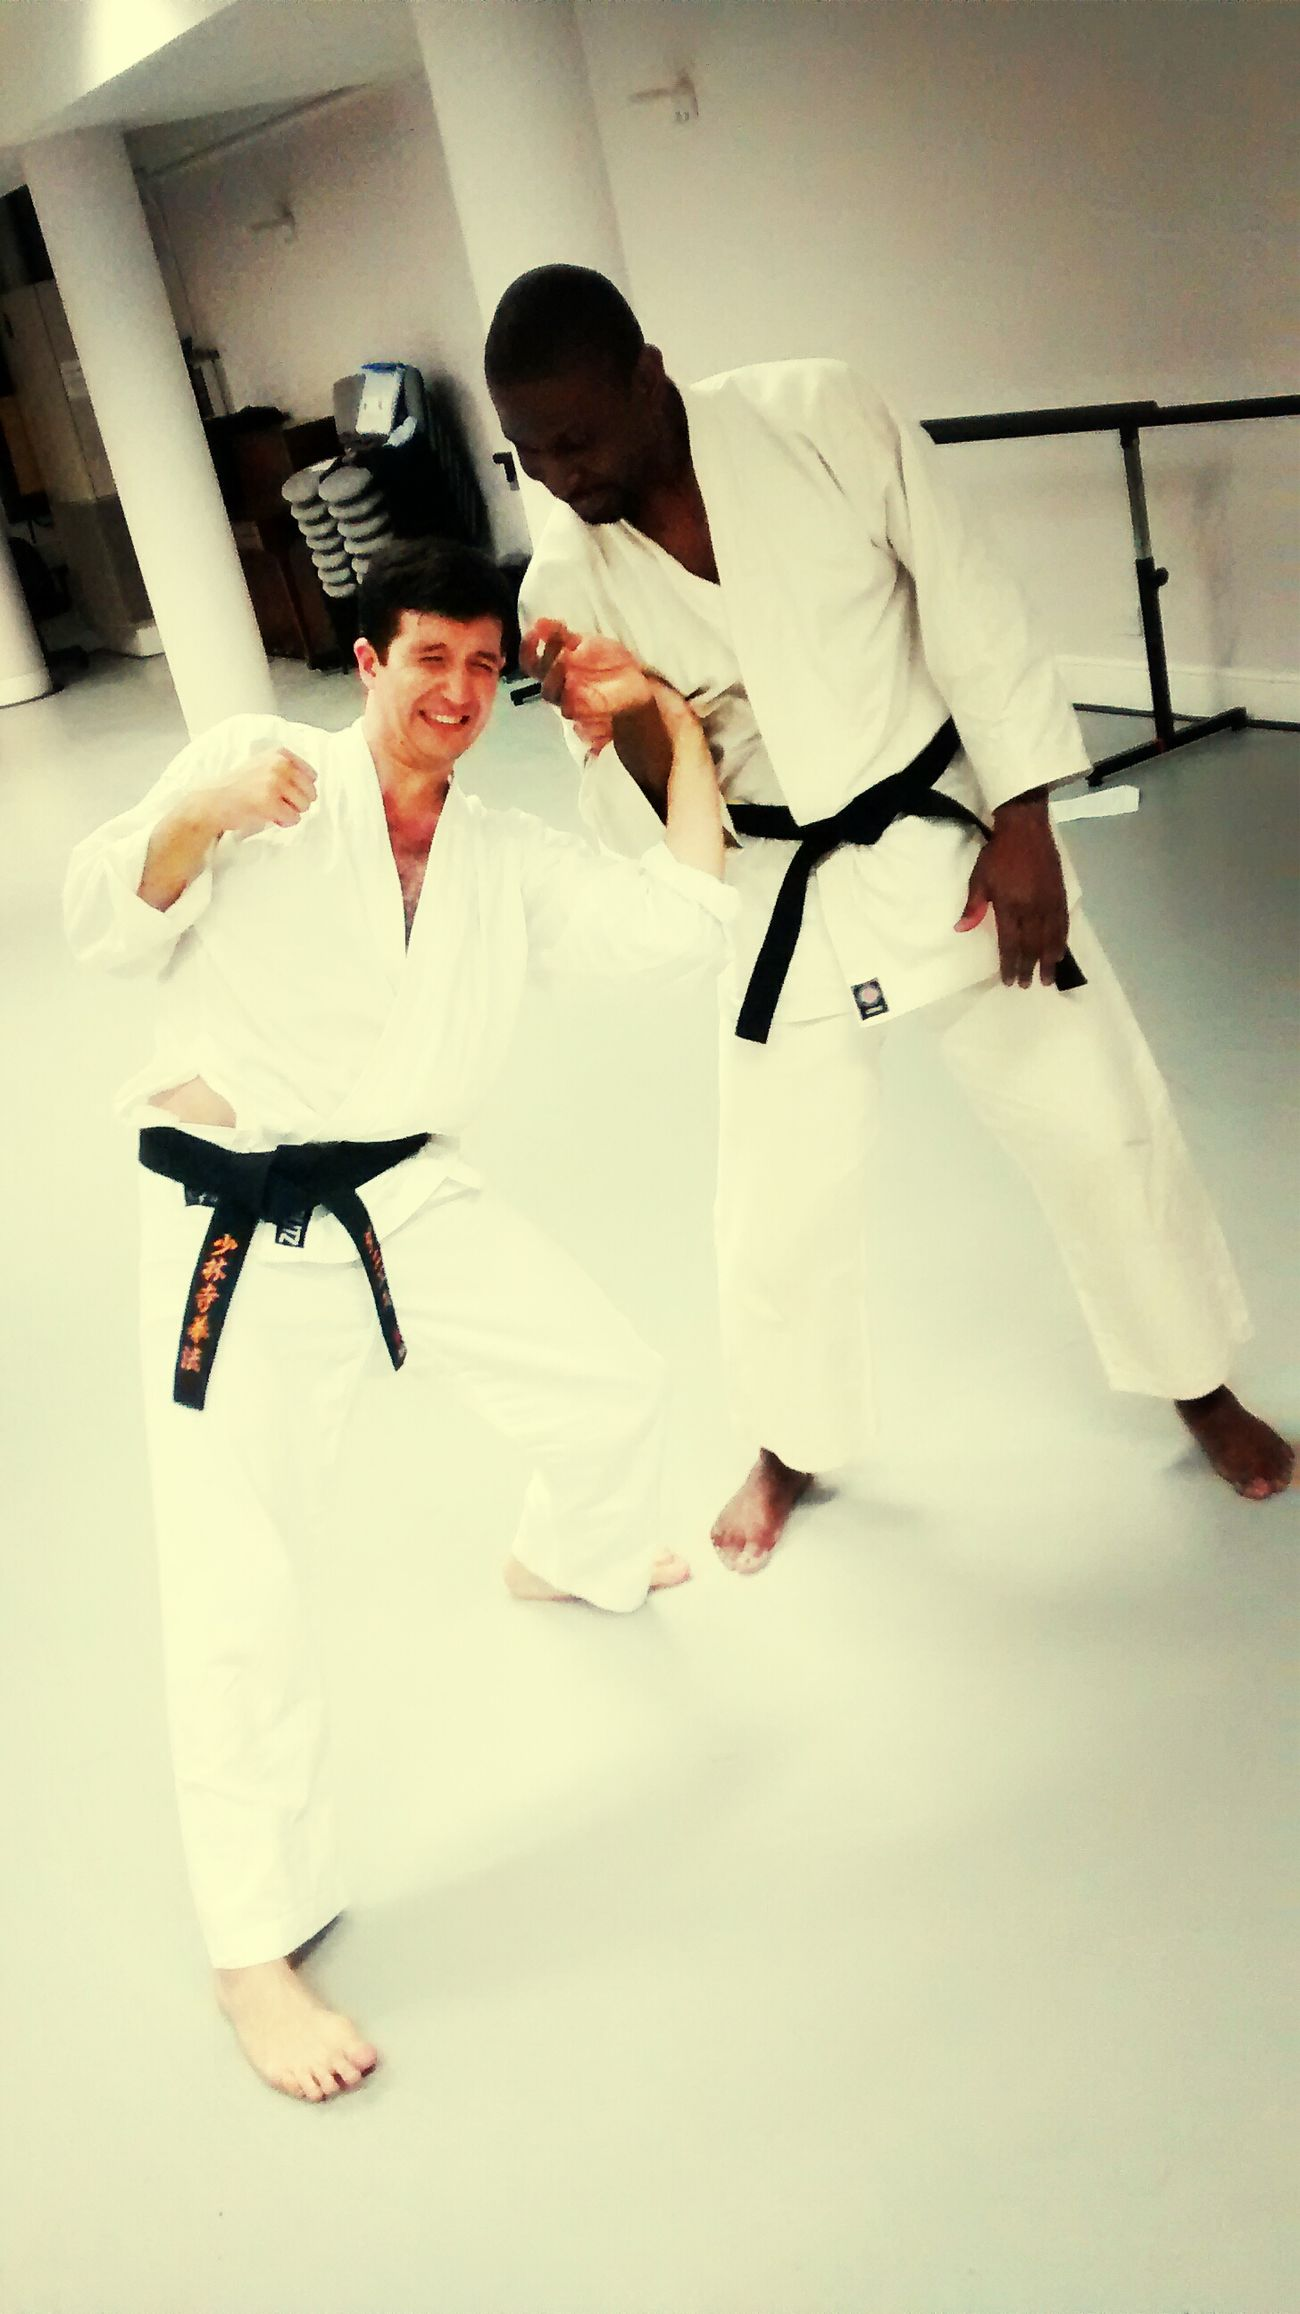 Shorinji Kempo Bskf City Kempo Martial Arts